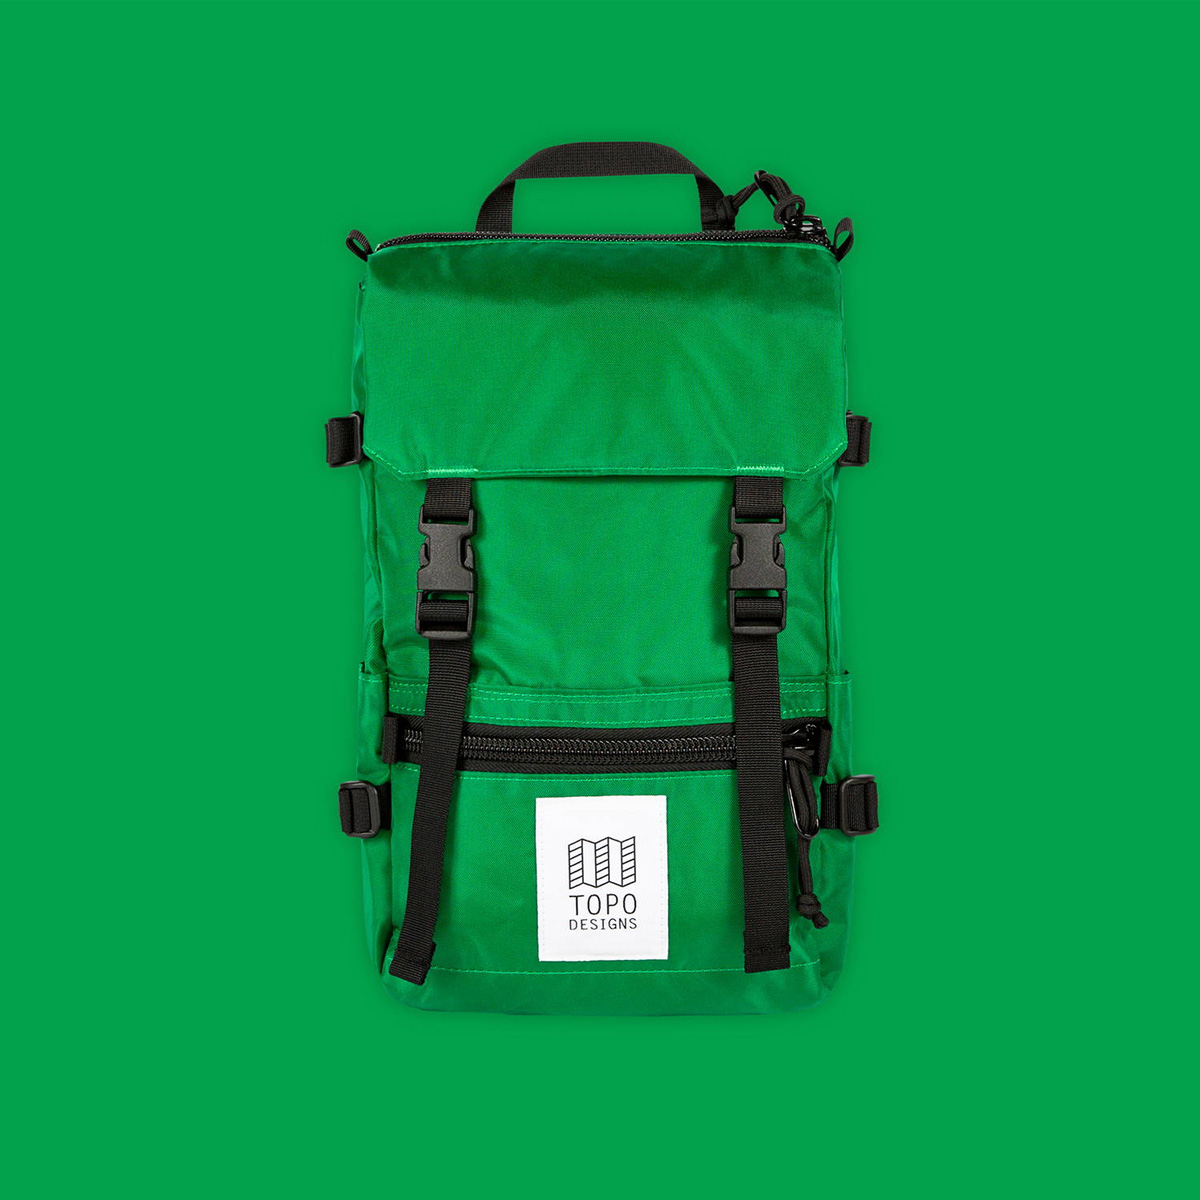 Topo Designs Rover Pack - Mini Green-Green, statement-making bag that's the perfect size for errands around town or on the trail